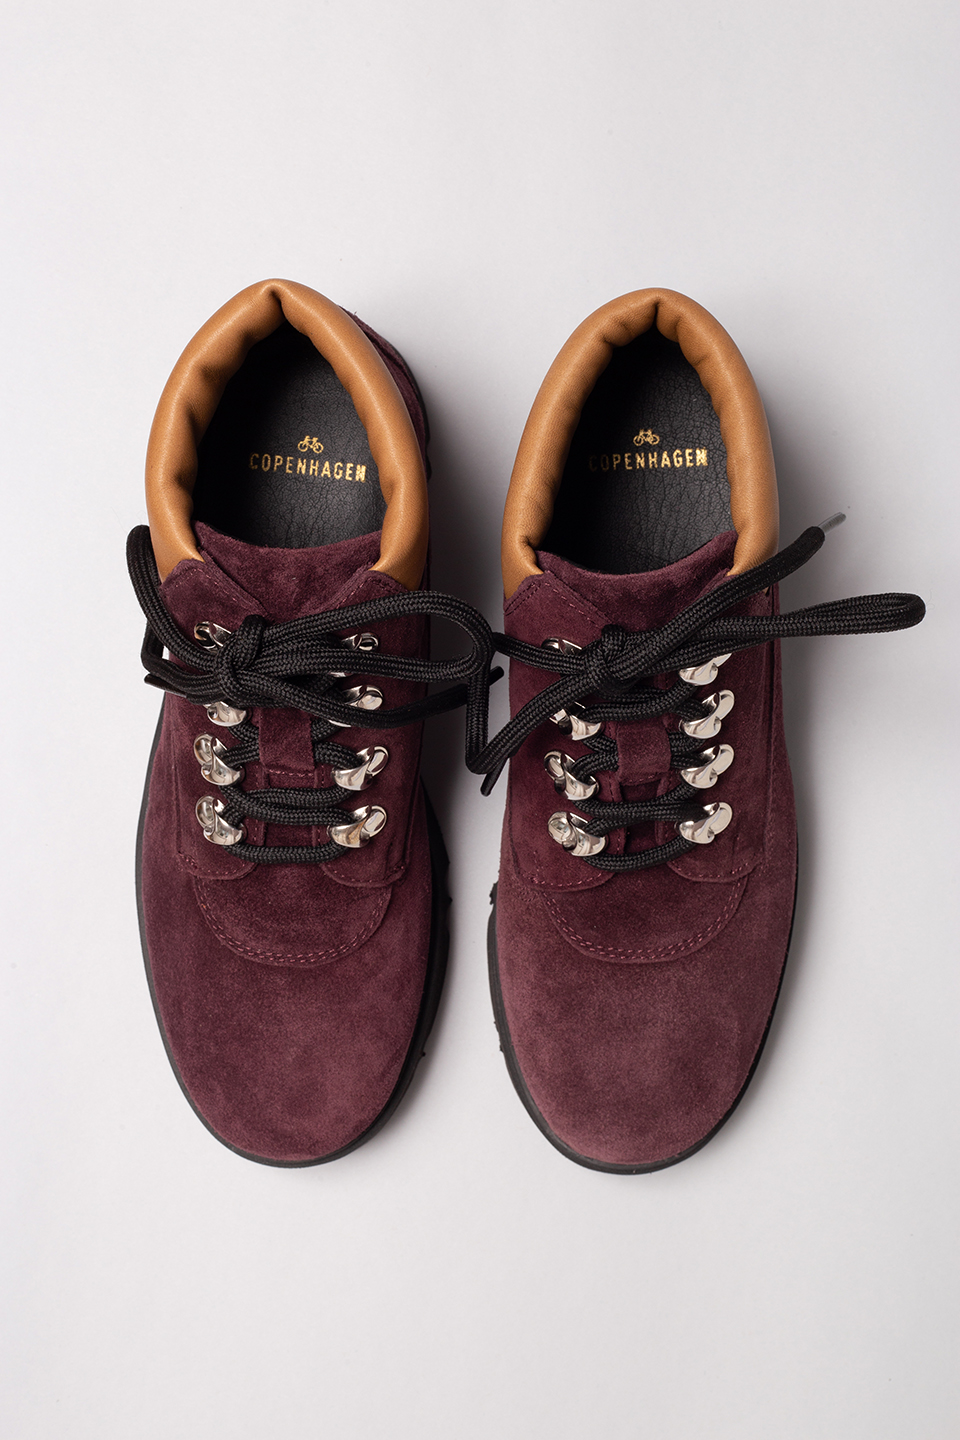 CPH99 crosta wood berry - alternative 2